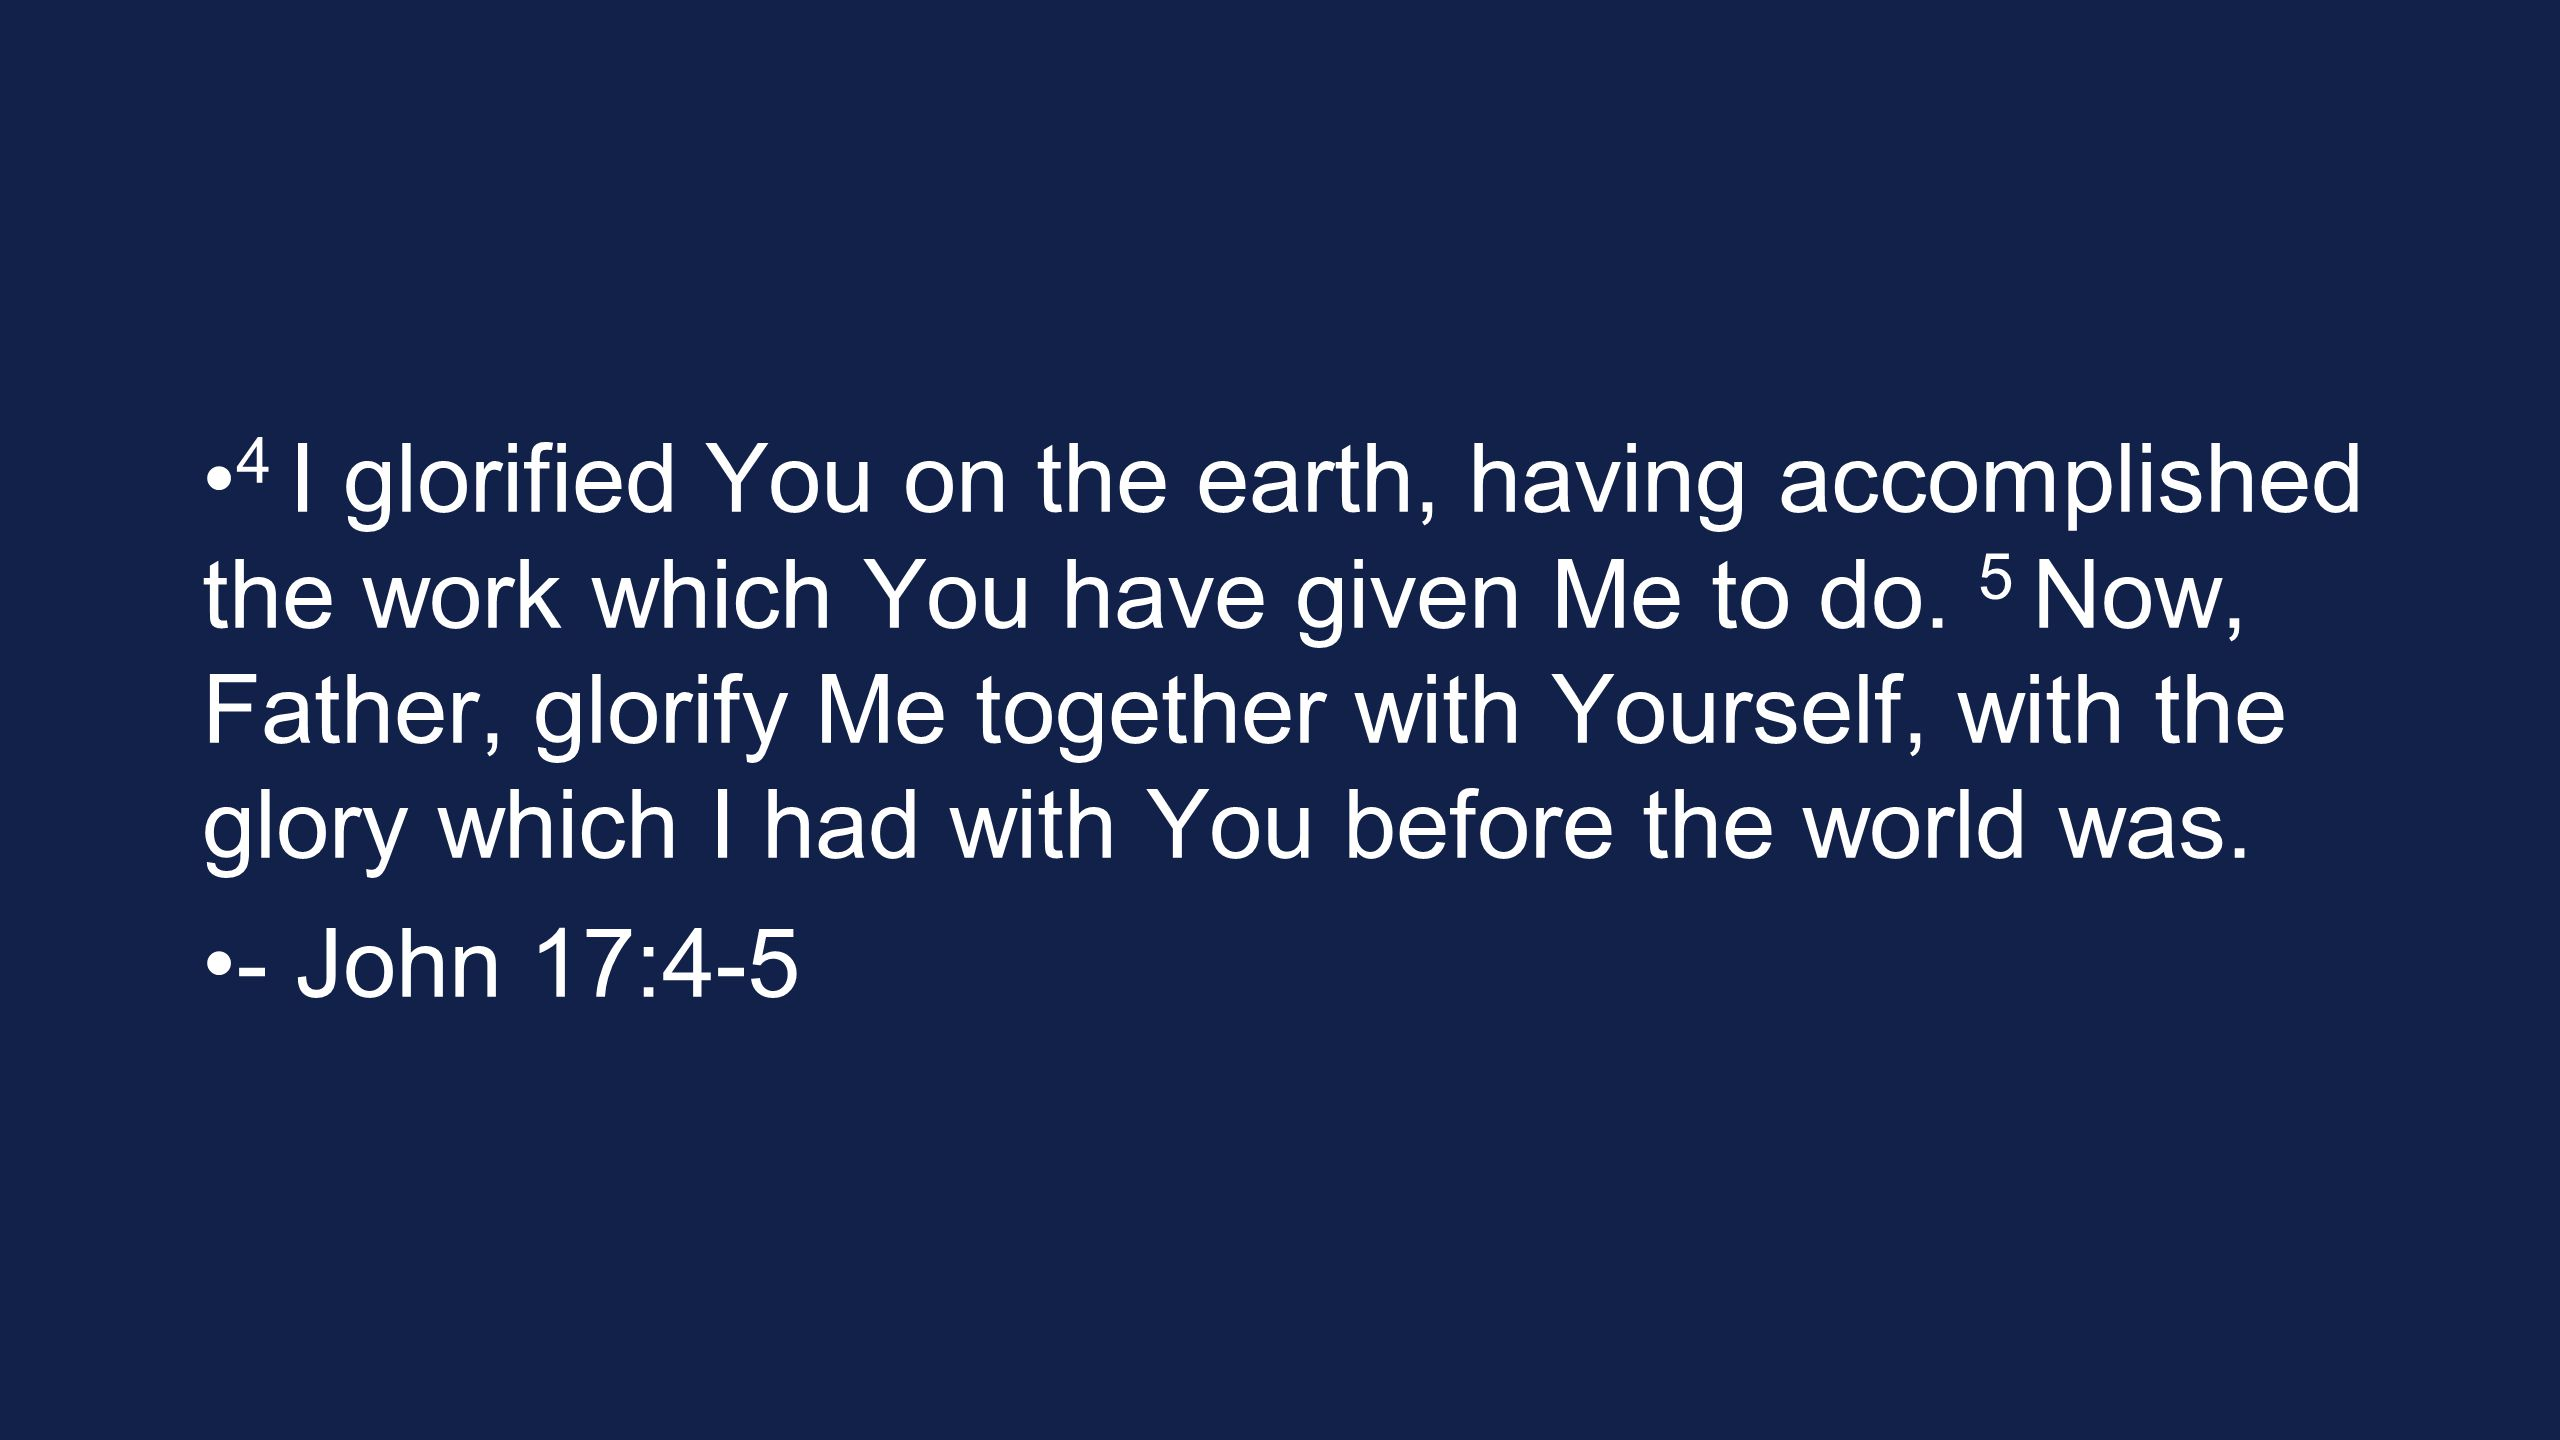 4 I glorified You on the earth, having accomplished the work which You have given Me to do. 5 Now, Father, glorify Me together with Yourself, with the glory which I had with You before the world was.